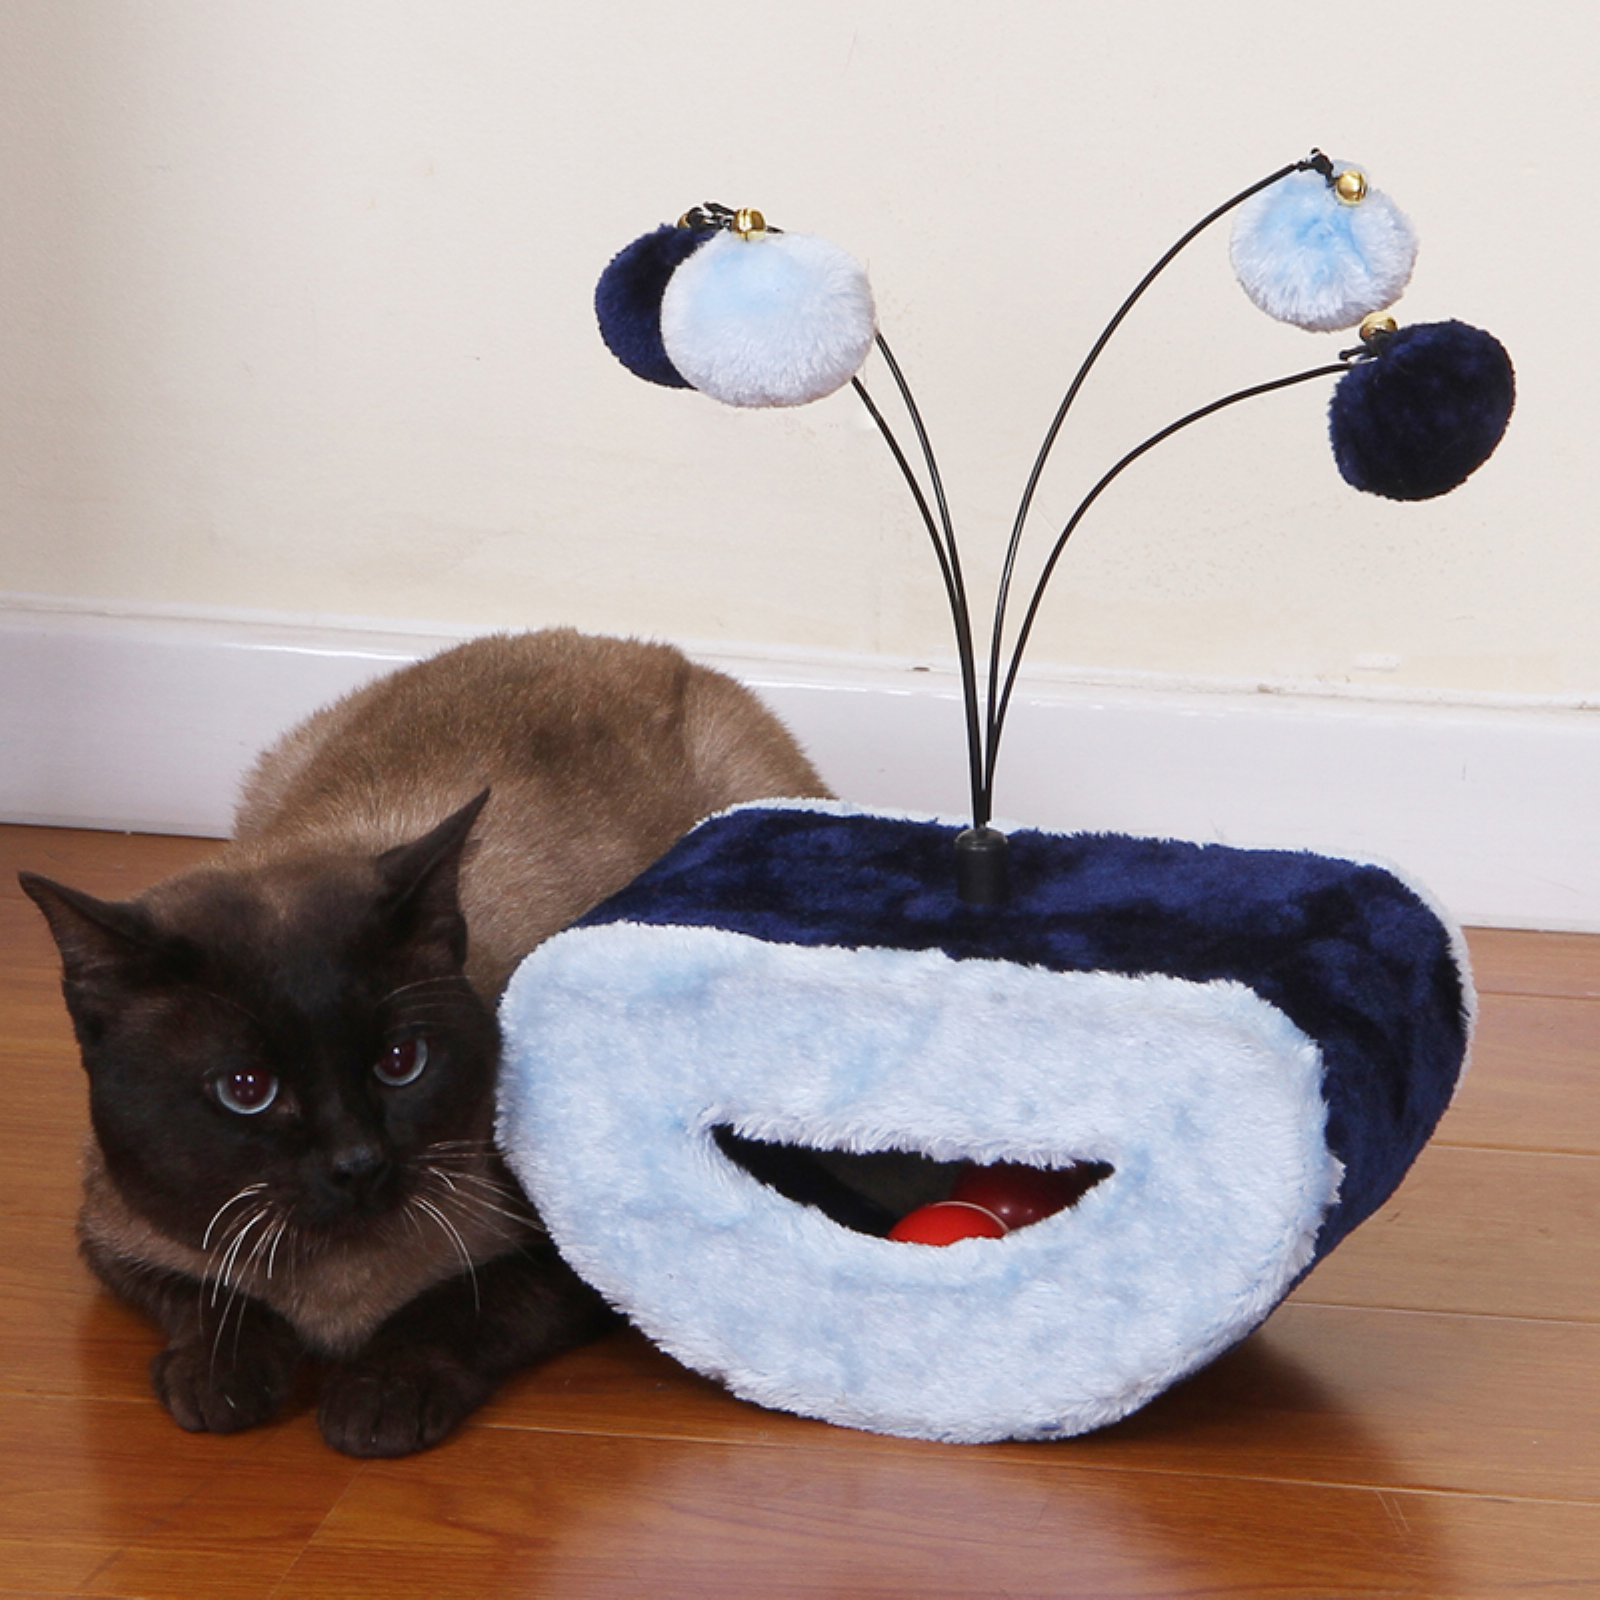 PetPals Dainty Light Blue Cat Toy with Sisal and Teasing Toys